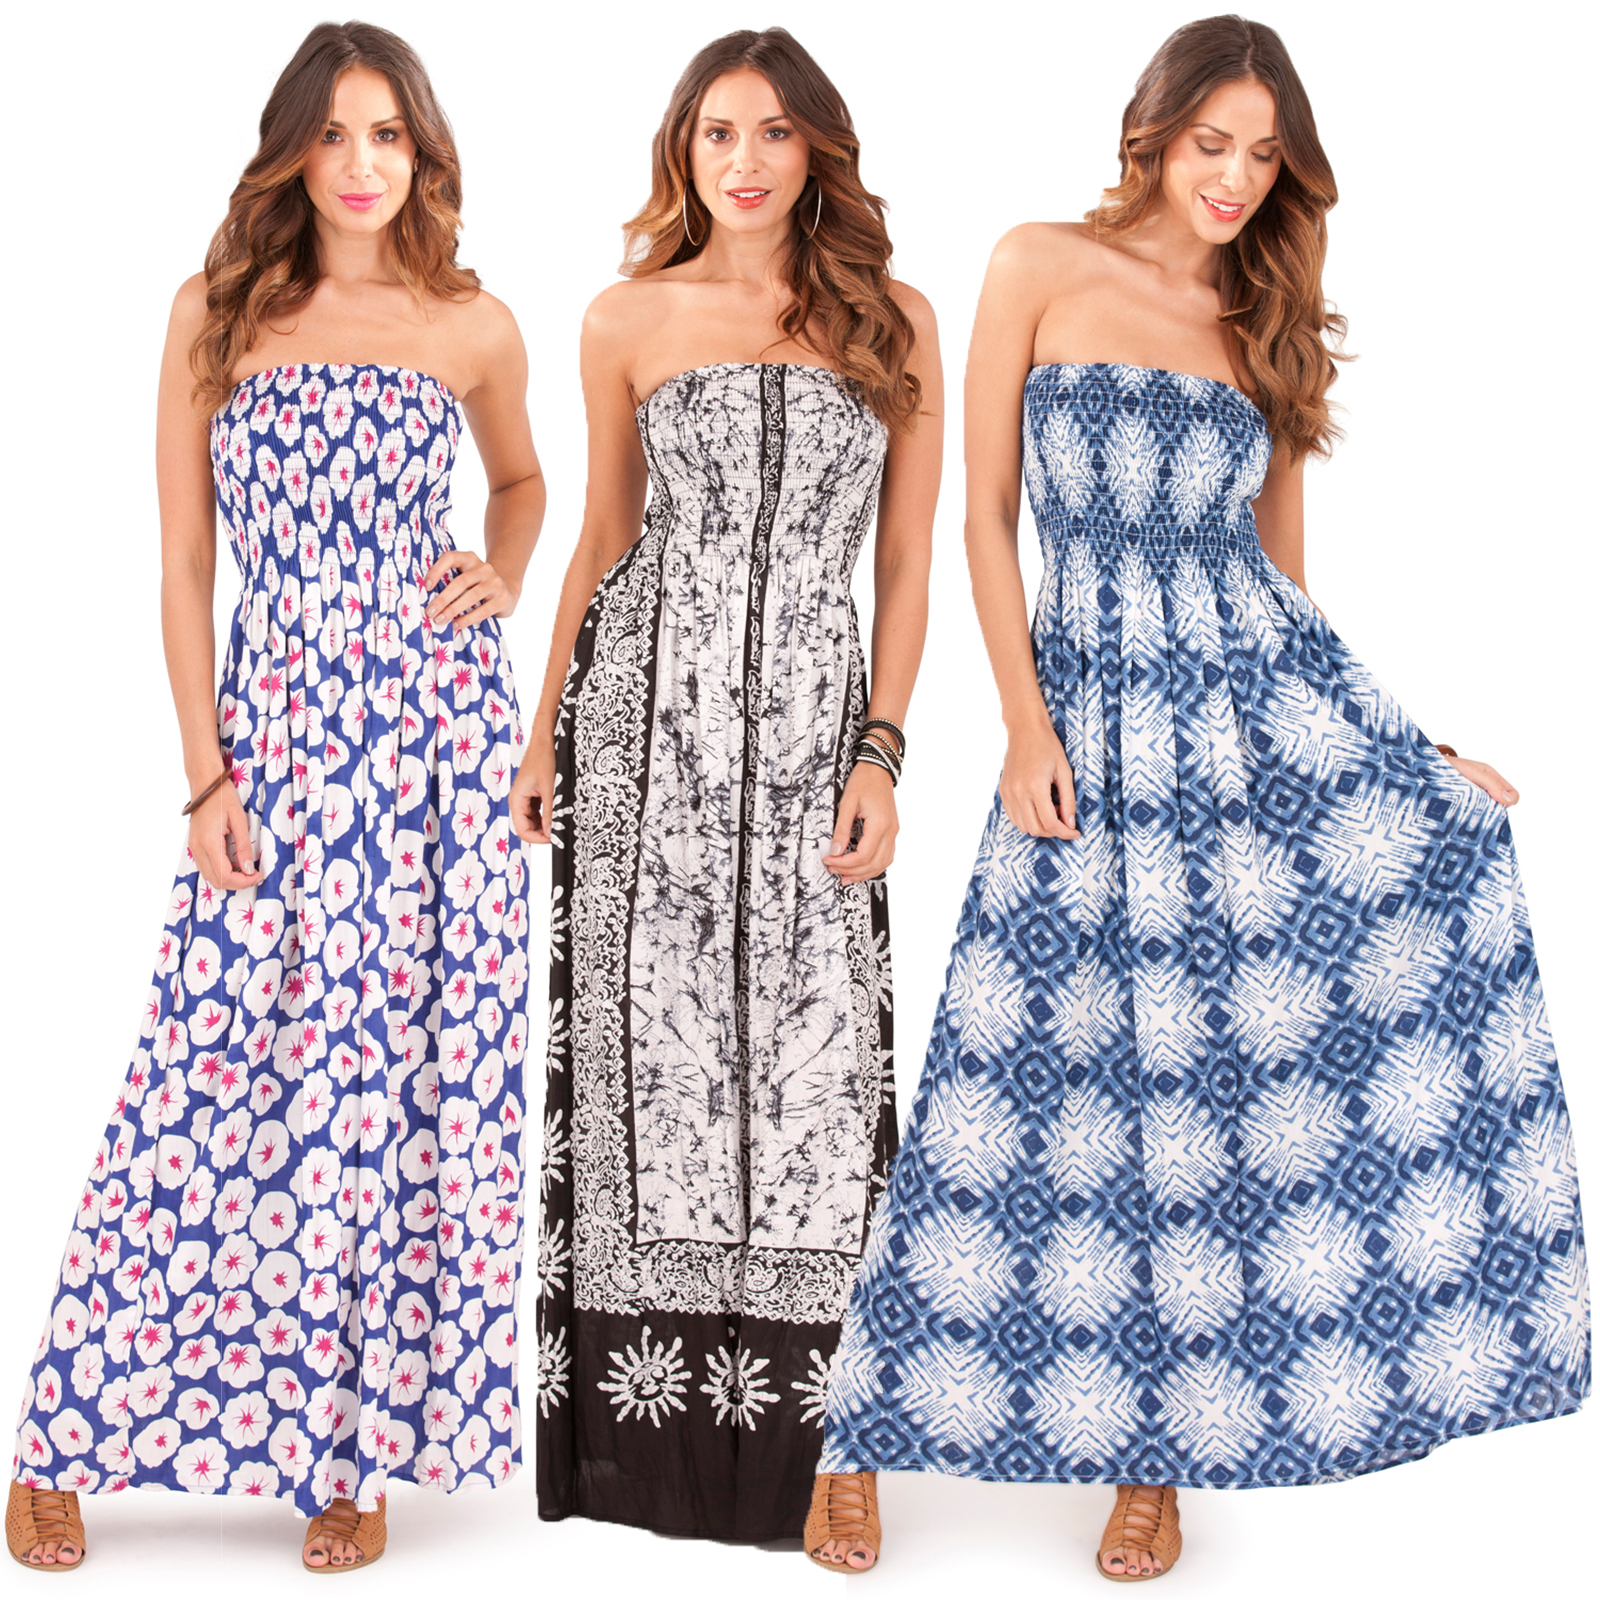 Pistachio Womens Bandeau Patterned Sun Dress New Ladies ...